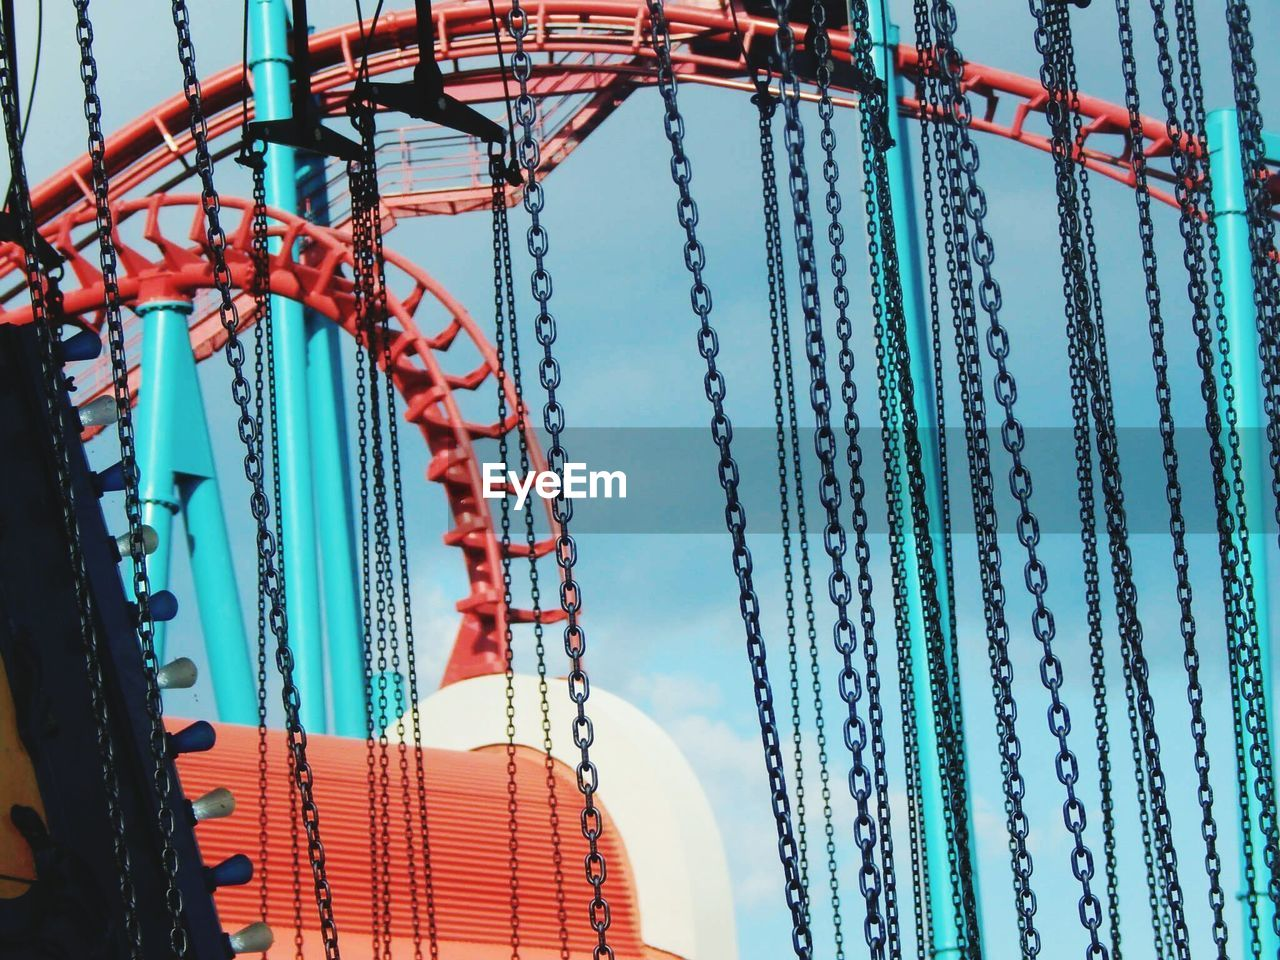 Low Angle View Of Rollercoaster And Chains Against Blue Sky